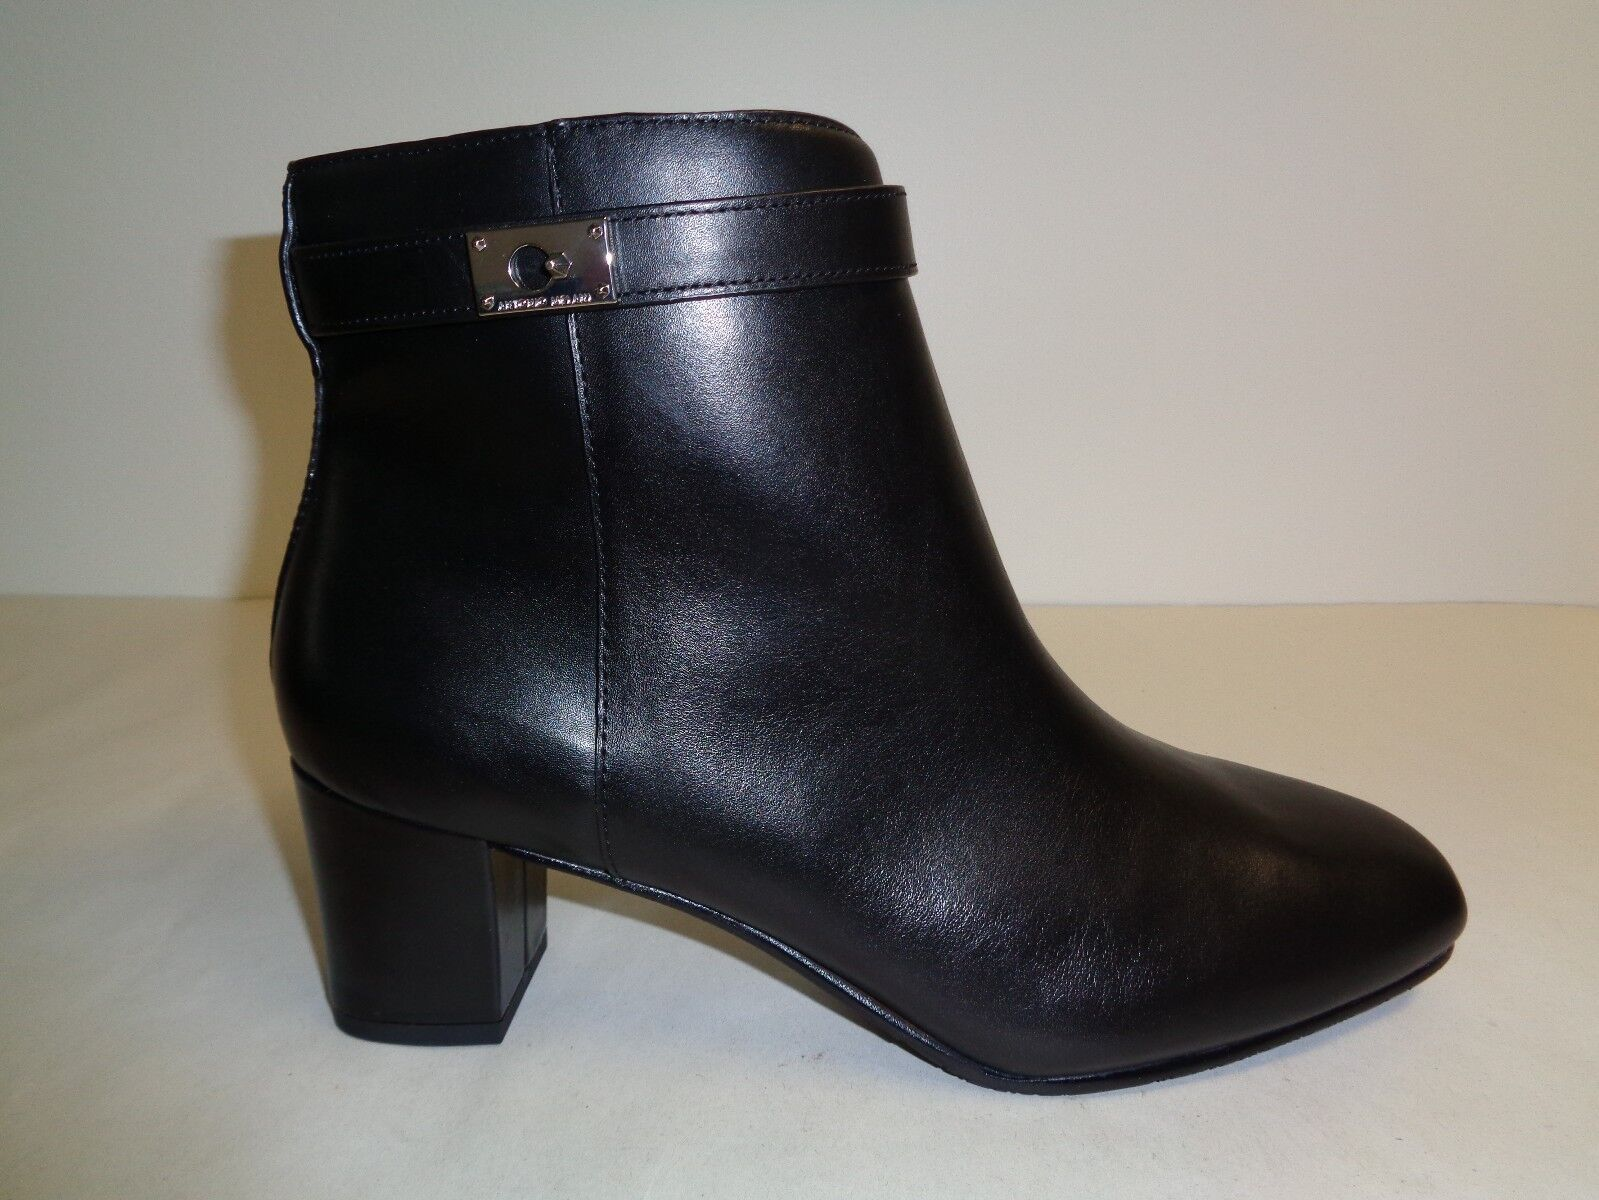 Antonio Melani Size 9.5 M HARDINE Black Leather Ankle Boots New Womens Shoes